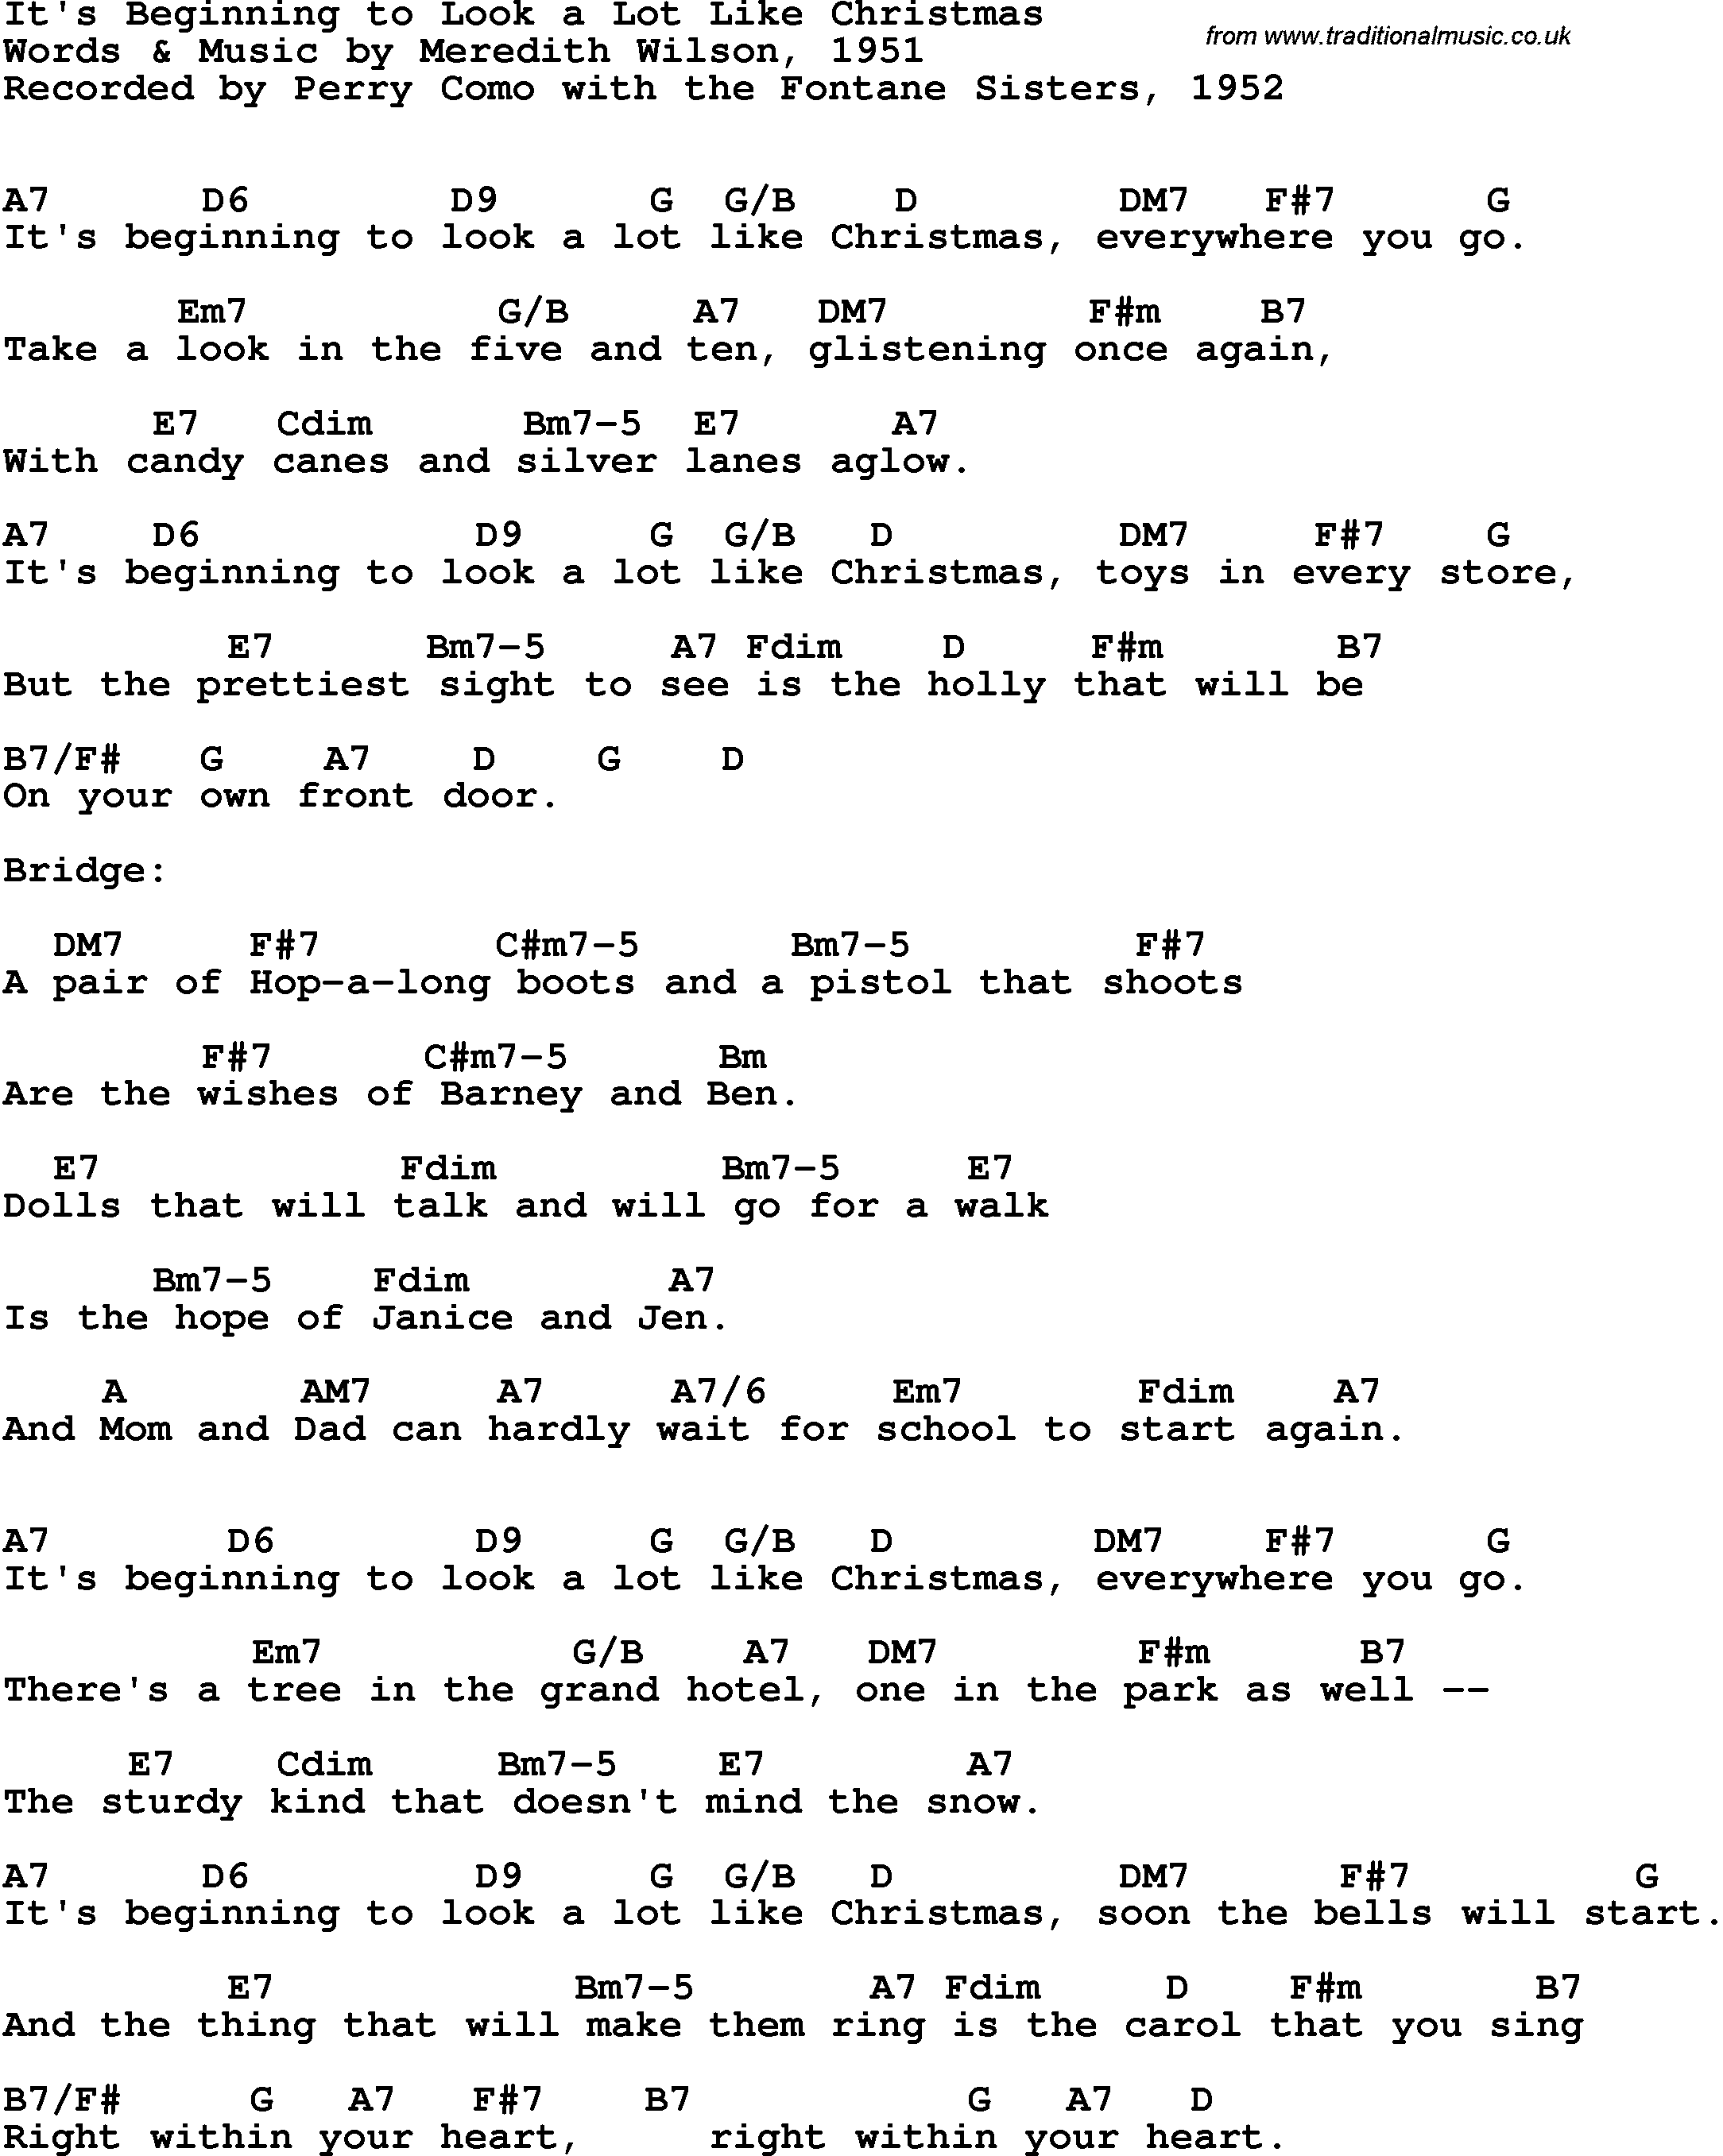 Song lyrics with guitar chords for It's Beginning To Look A Lot ...